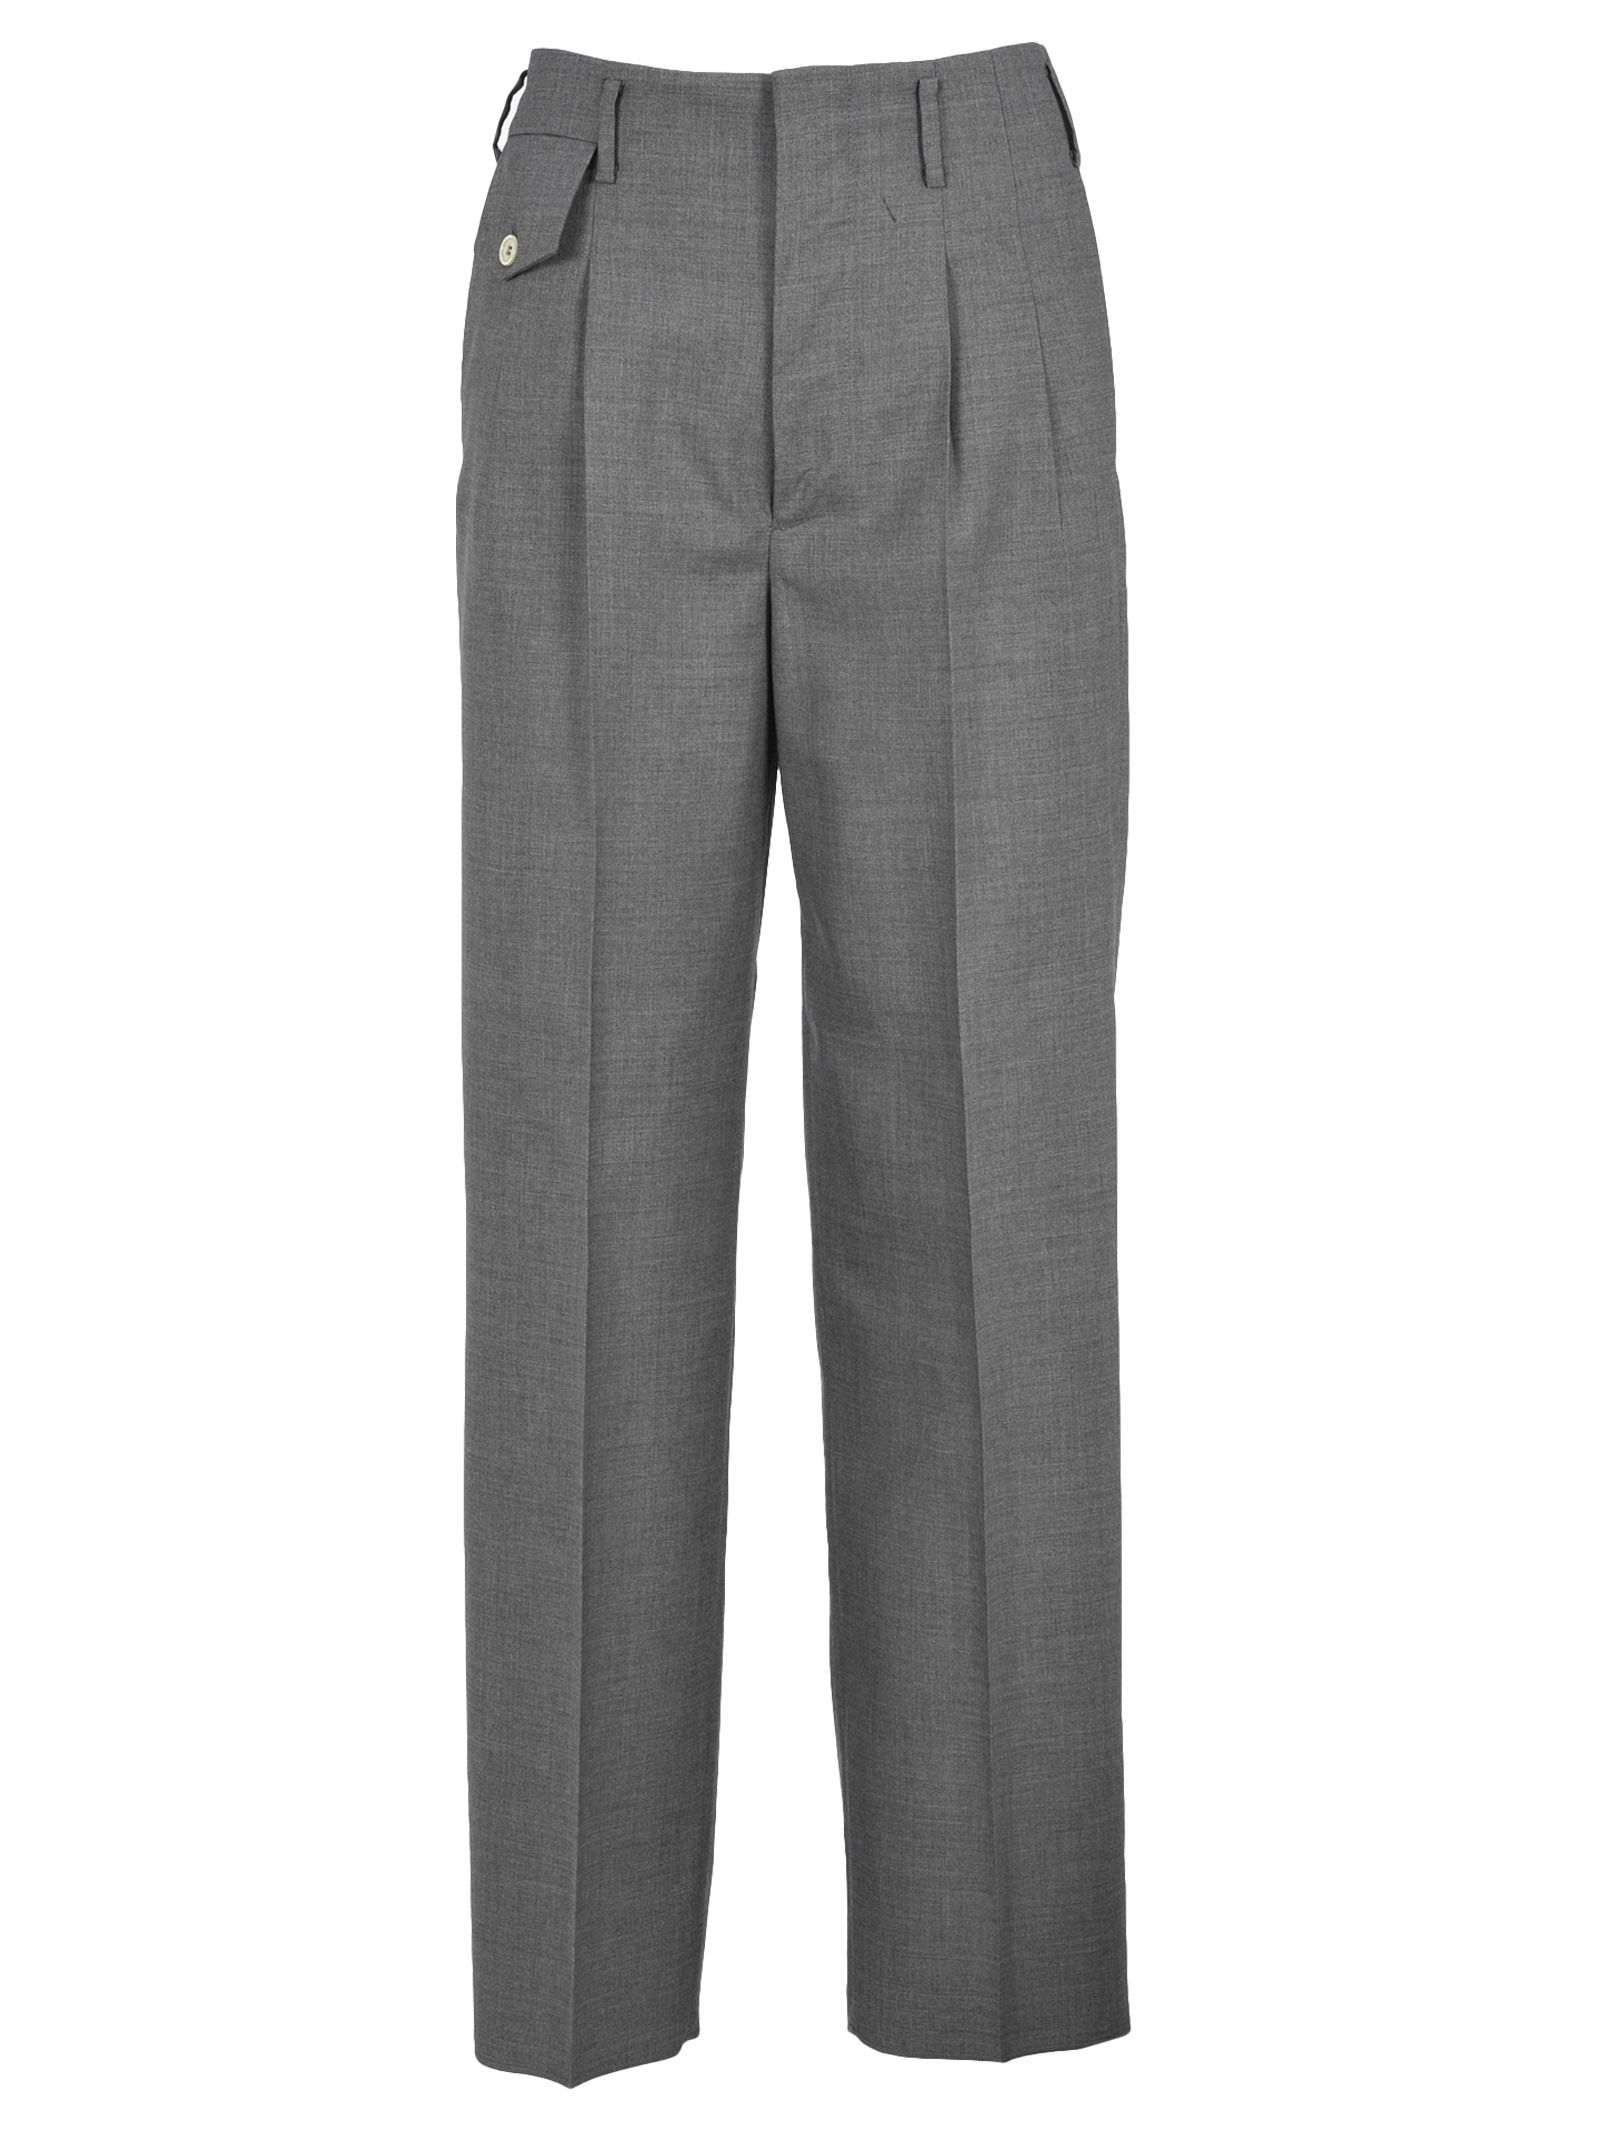 High Waisted Trousers in Grey